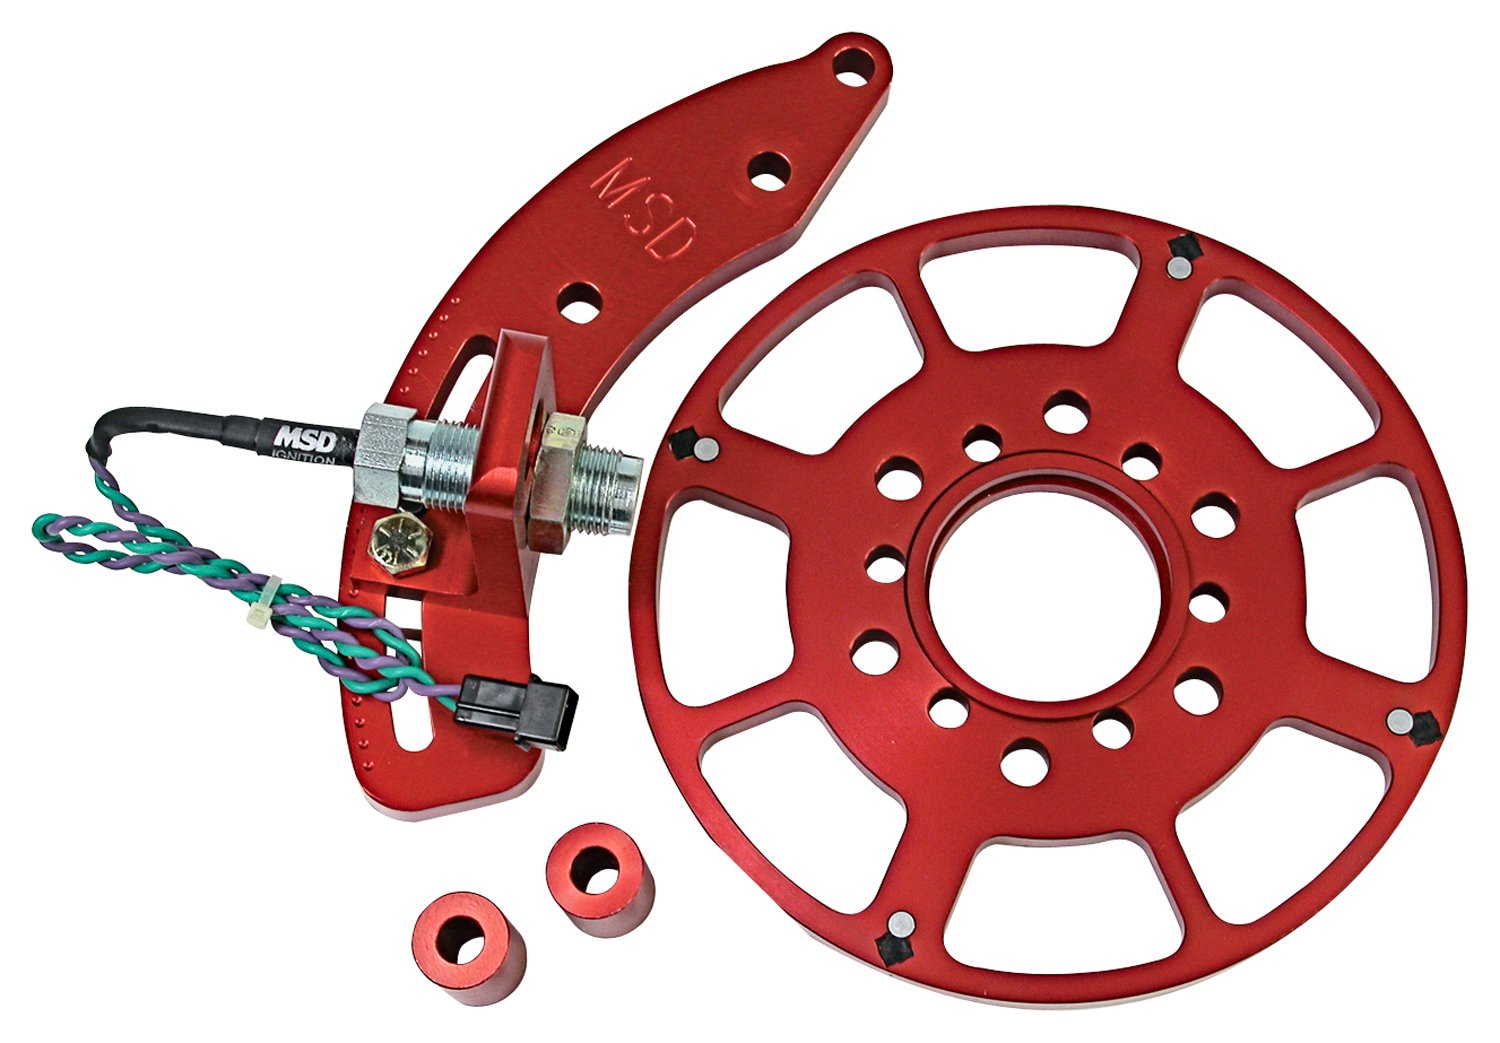 8633 - Chrysler Small Block Crank Trigger Kit Image